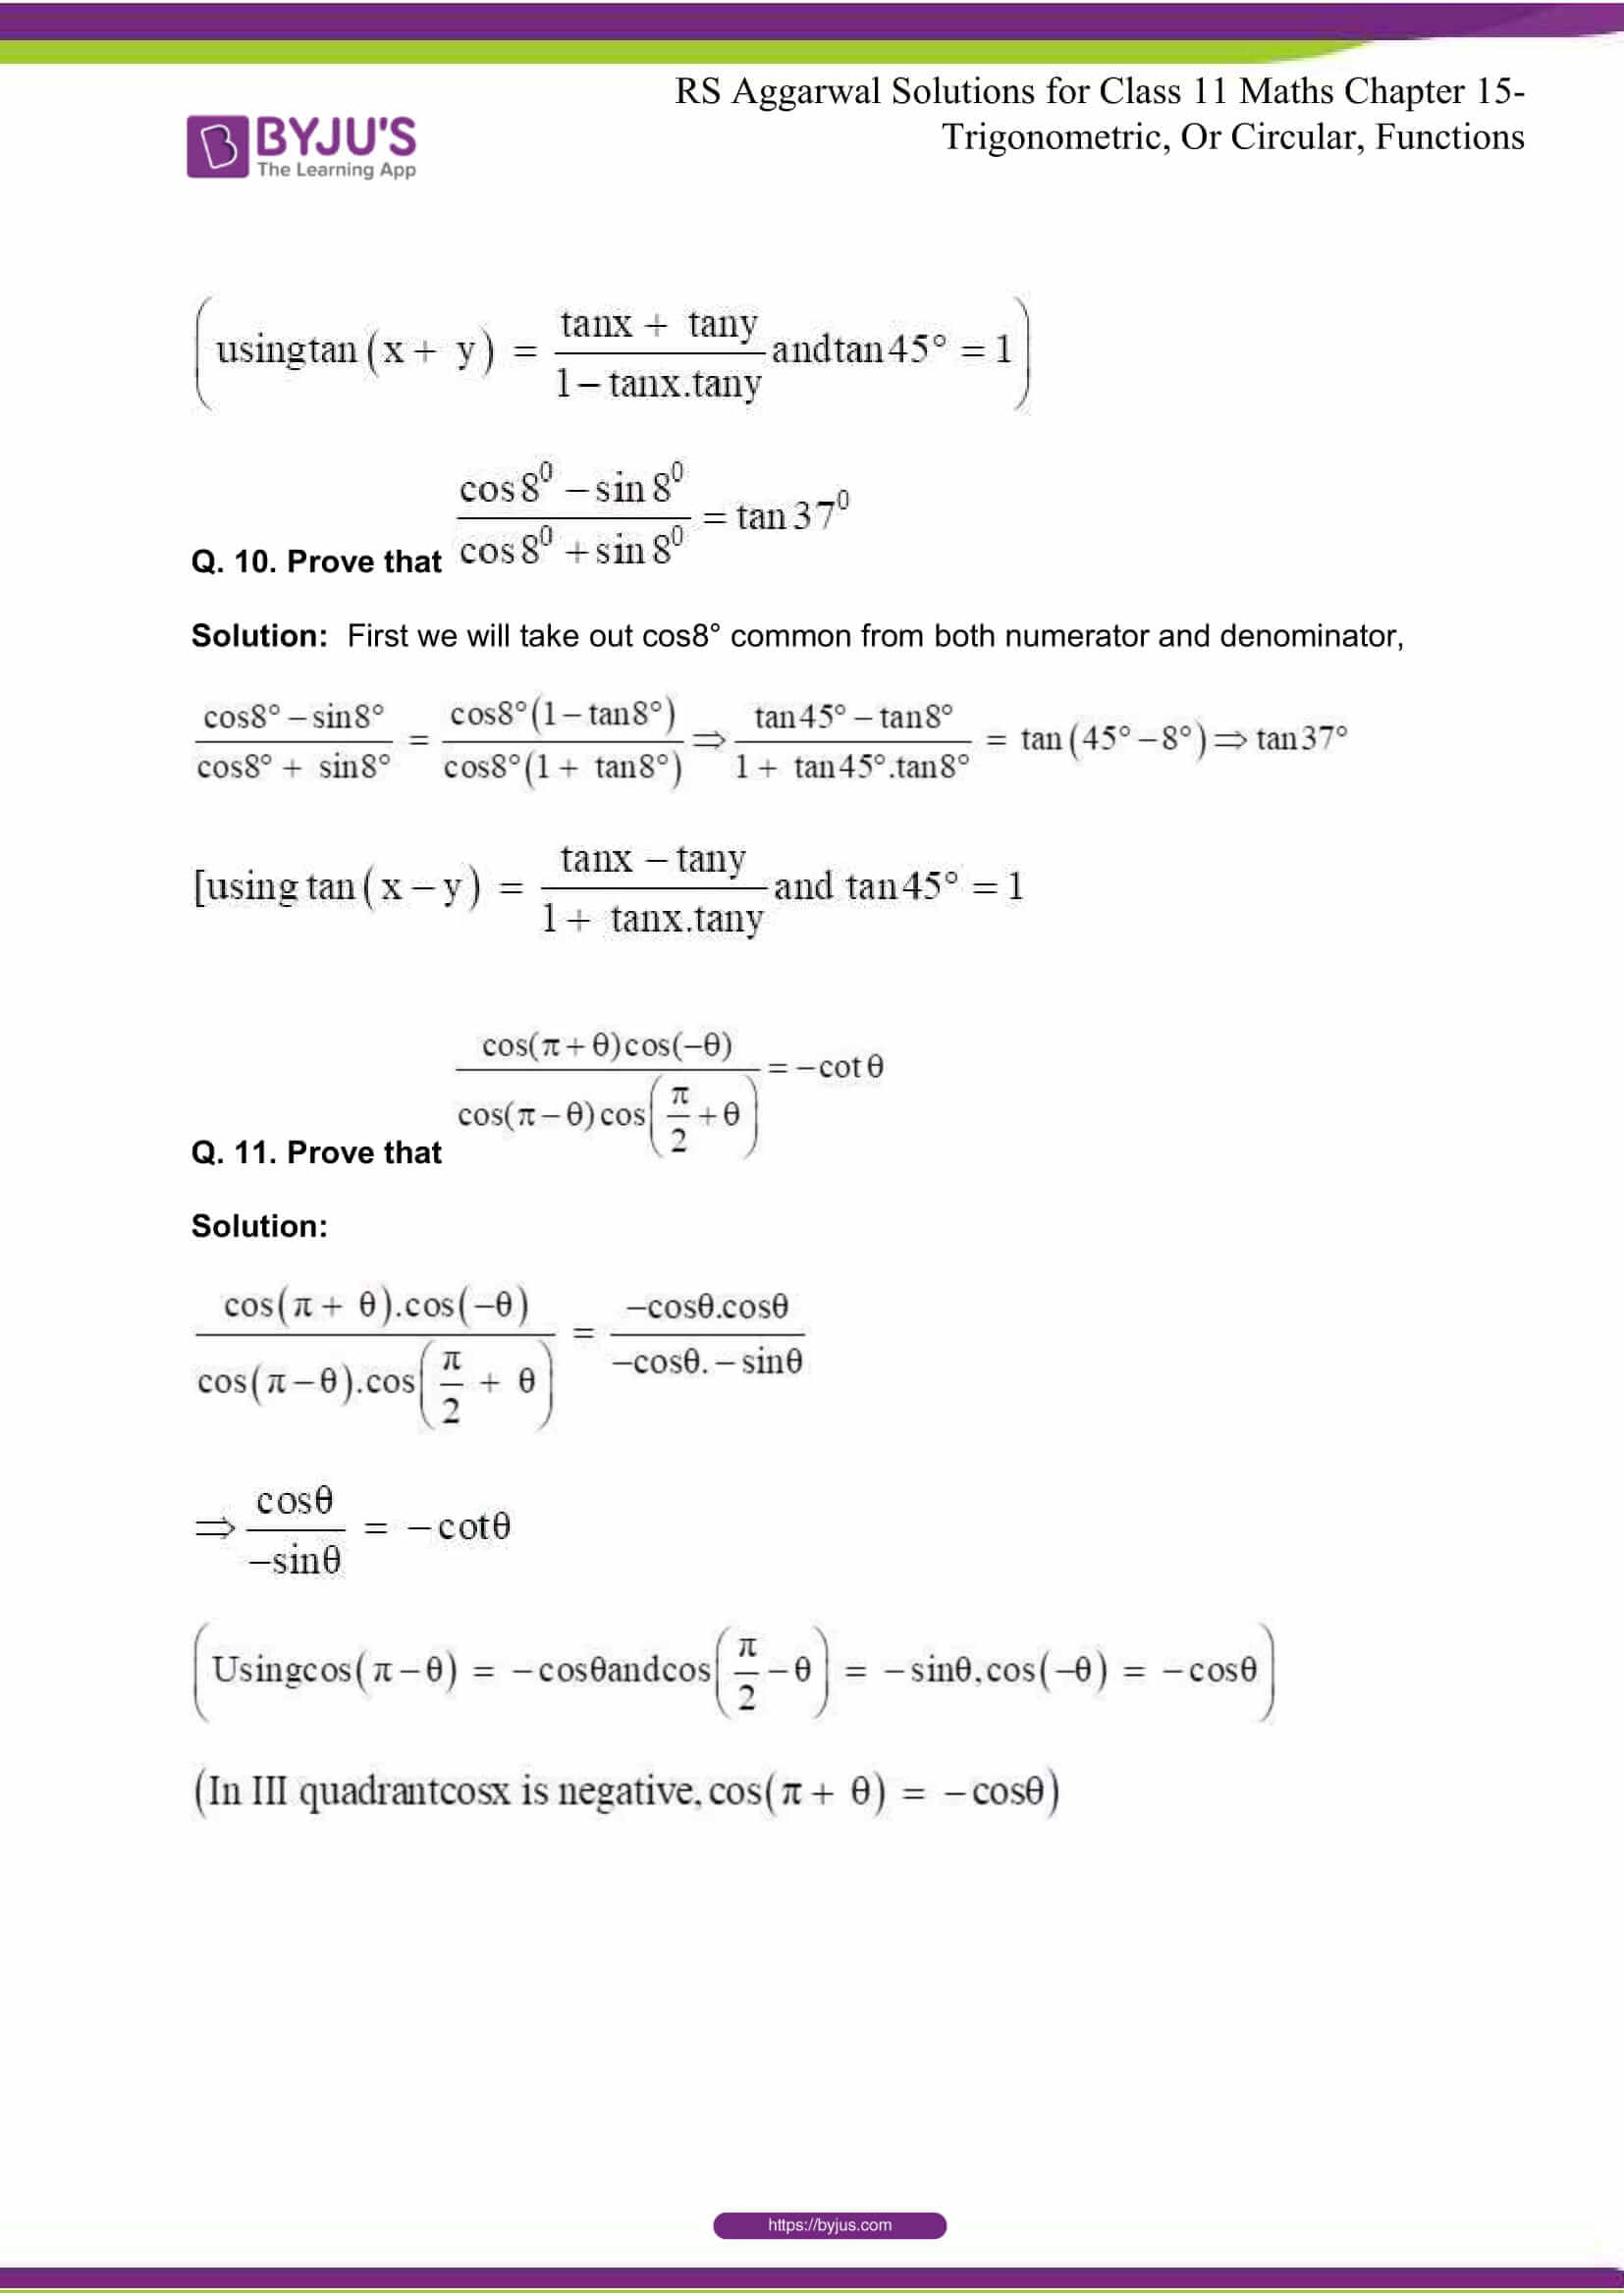 rsaggarwal solutions class 11 maths chapter 15 041